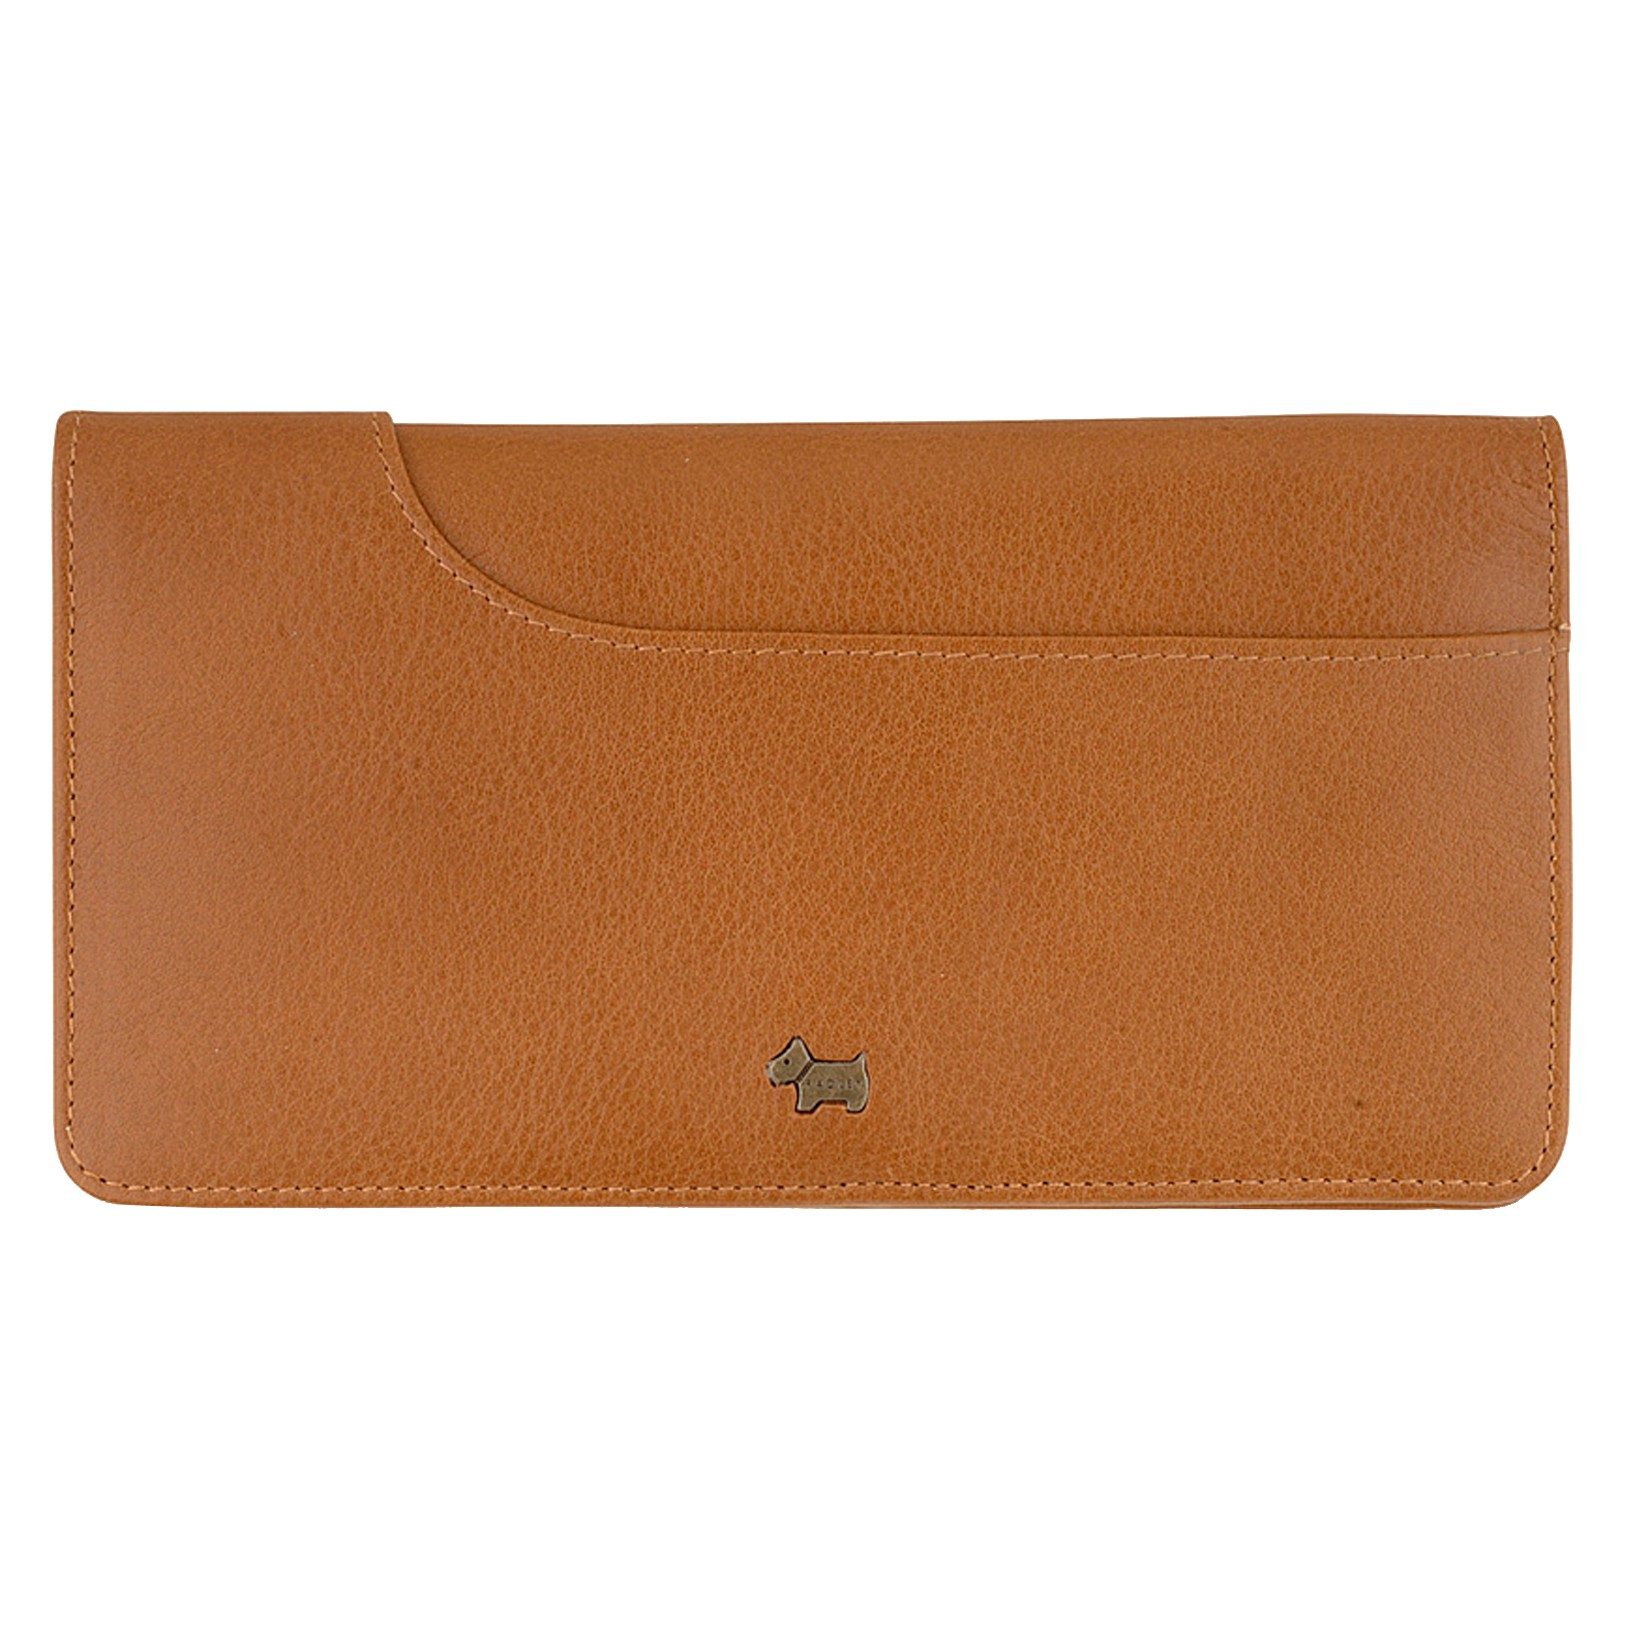 Radley Pockets Leather Large Matinee Purse Clearance Low Shipping Fee Websites Sale Online Outlet Authentic 7Zm0POV